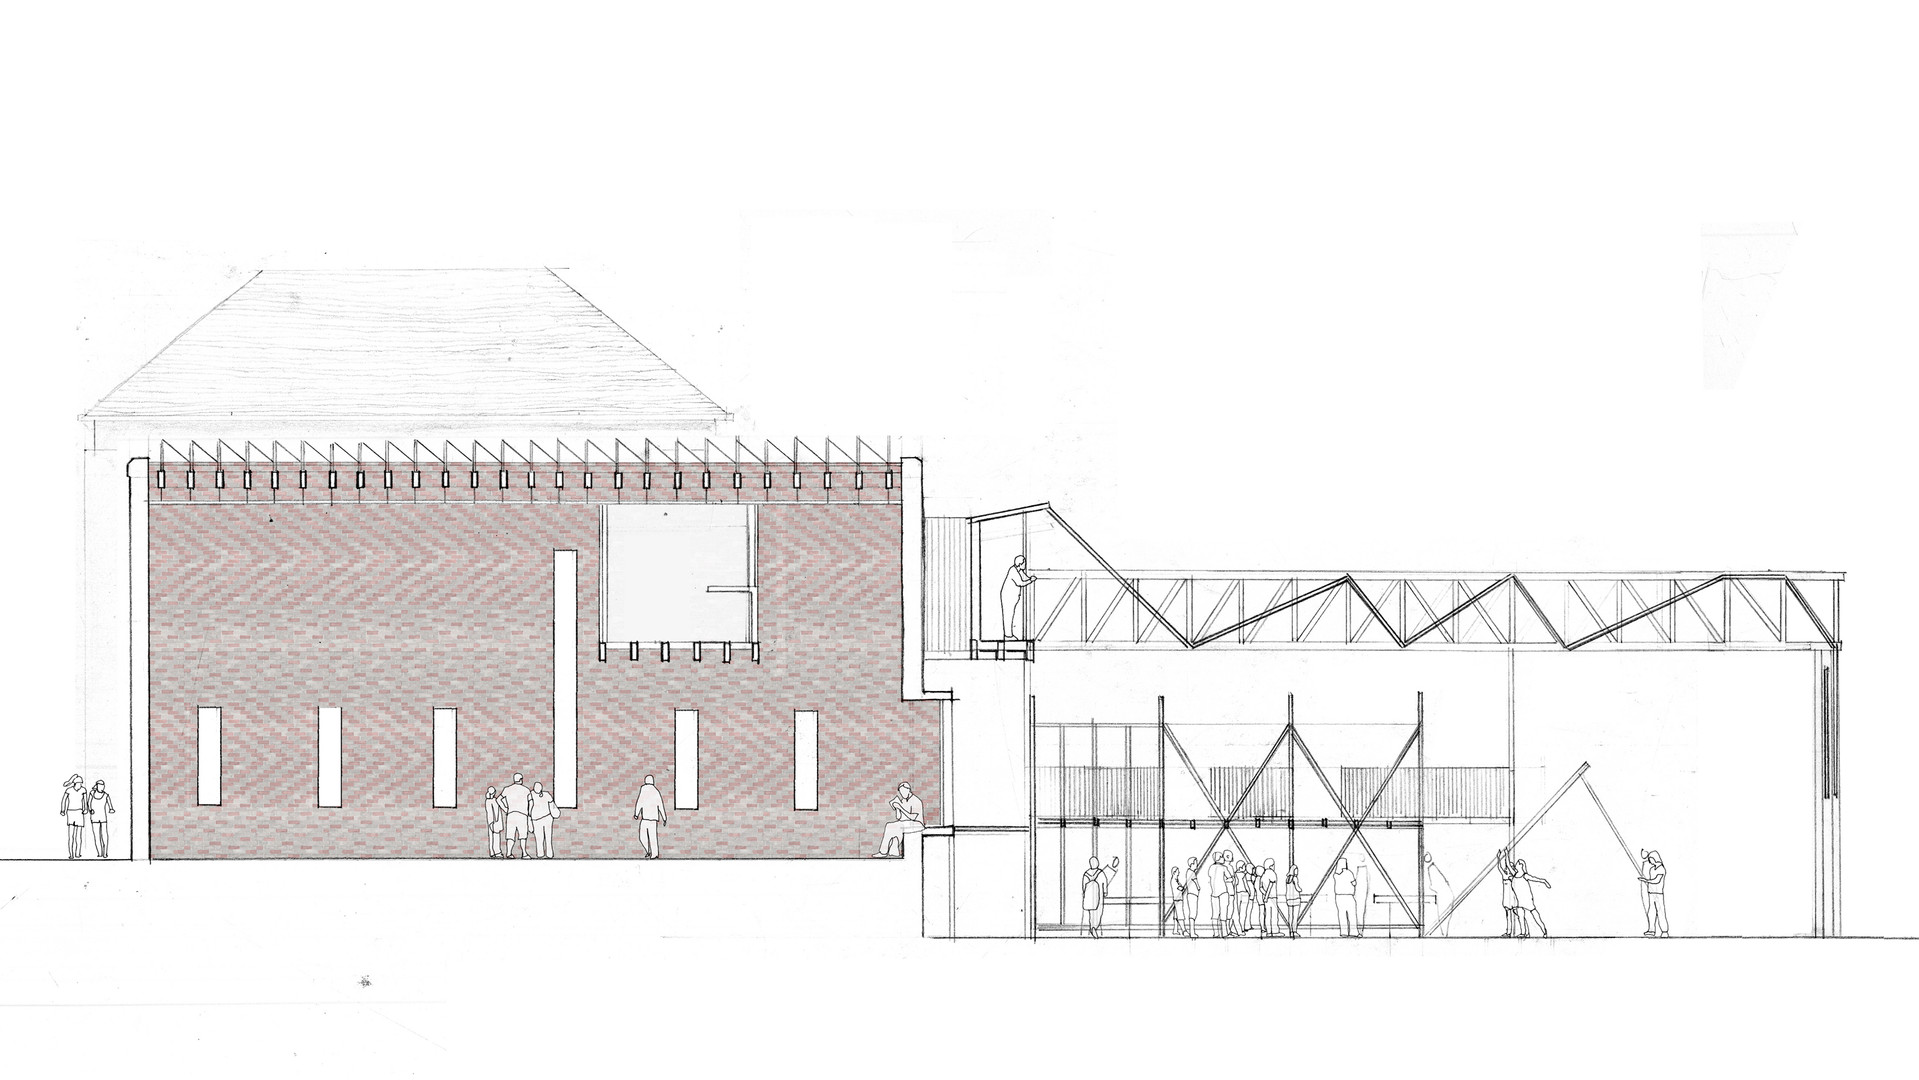 Architecture drawing for self-build training centre